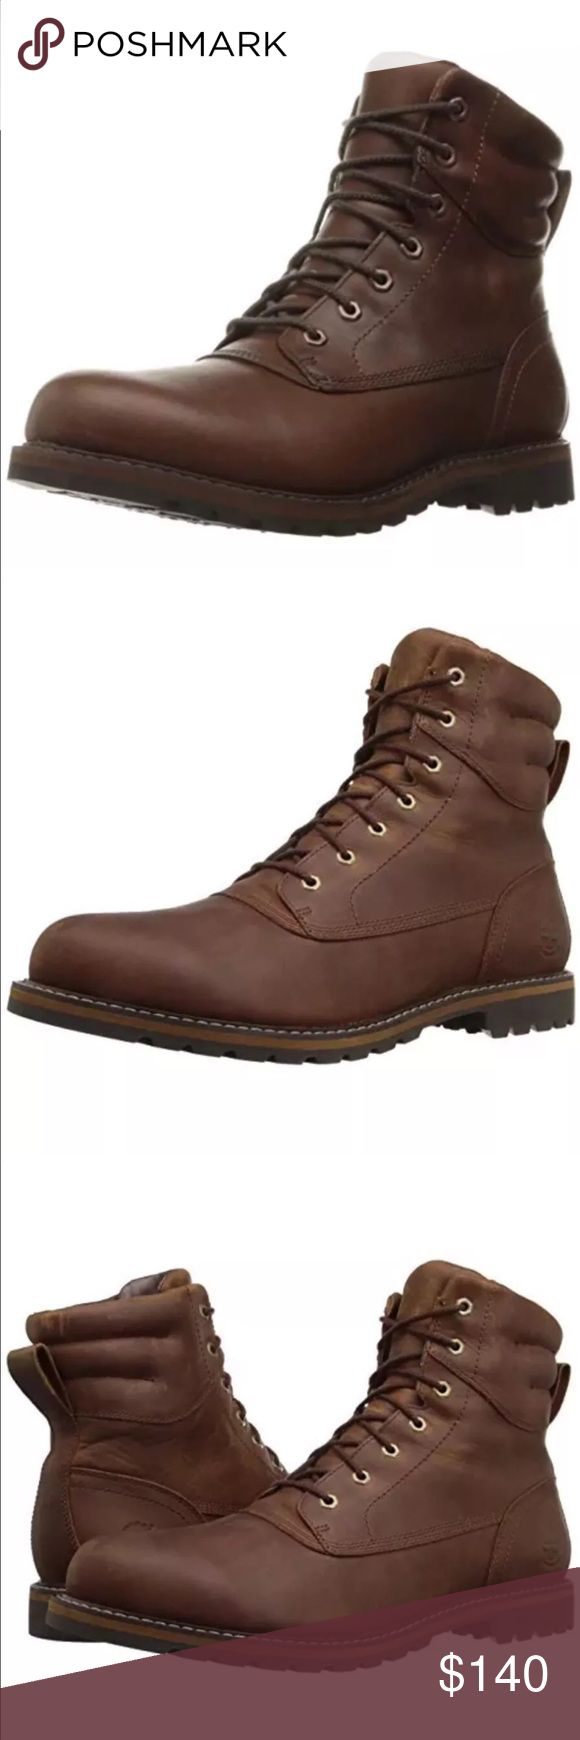 Timberland Men Chestnut Rg Plain Toe WP Boot sz 9 Timberland Men's Chestnut Ridge Plain Toe WP Boot Size 9 100% authentic real new in box Timberland Shoes Boots